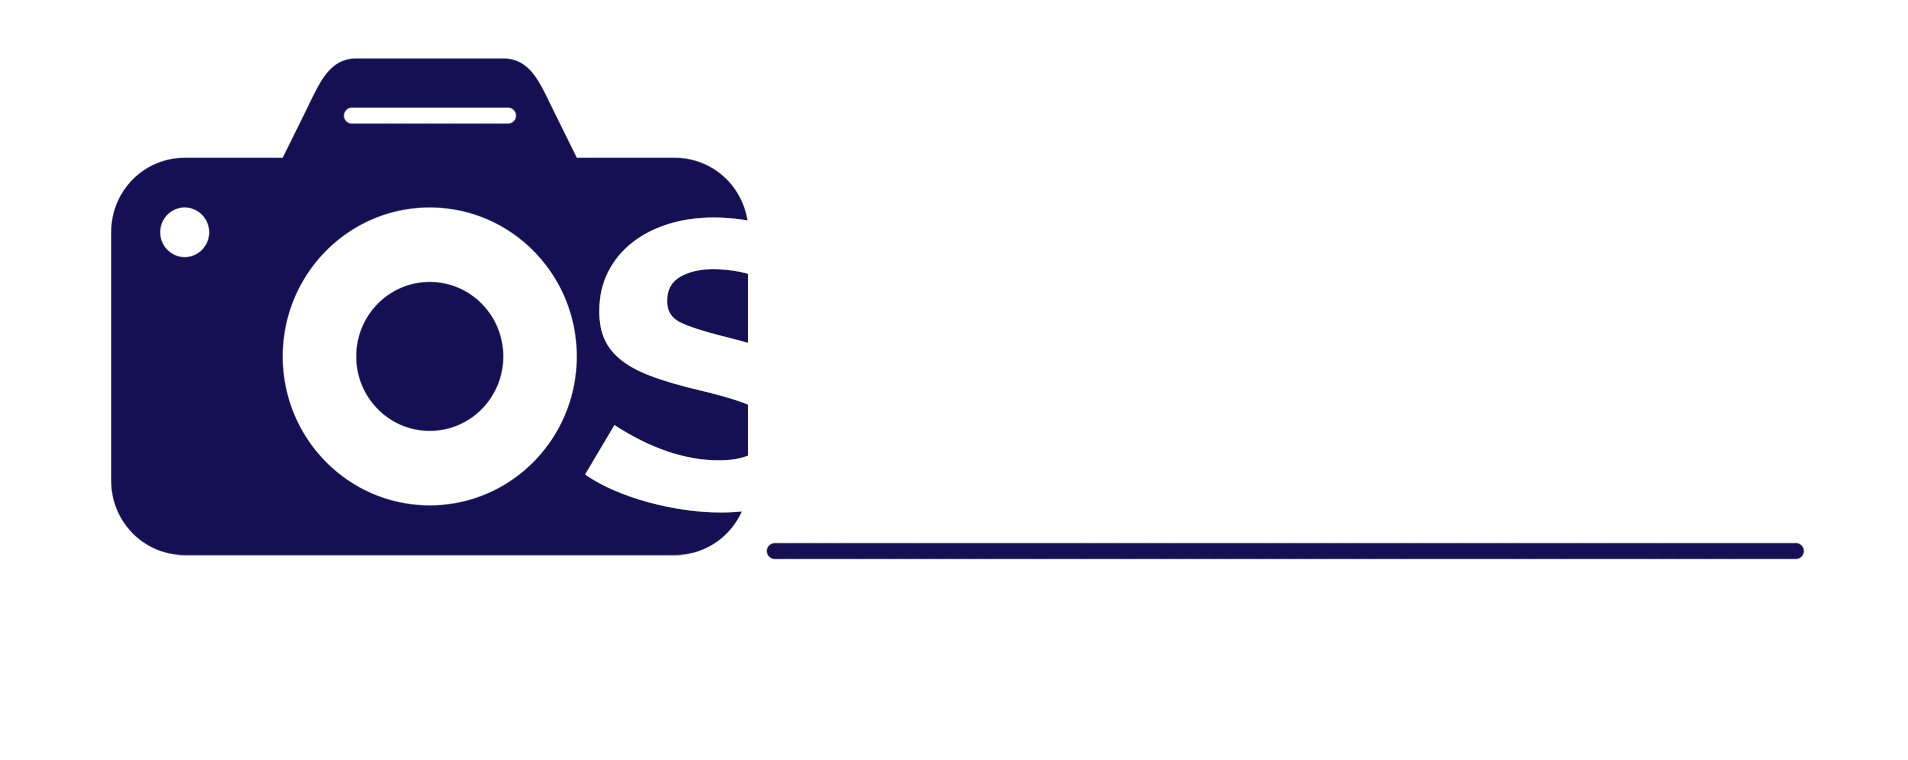 osimo - photos by oliver simon